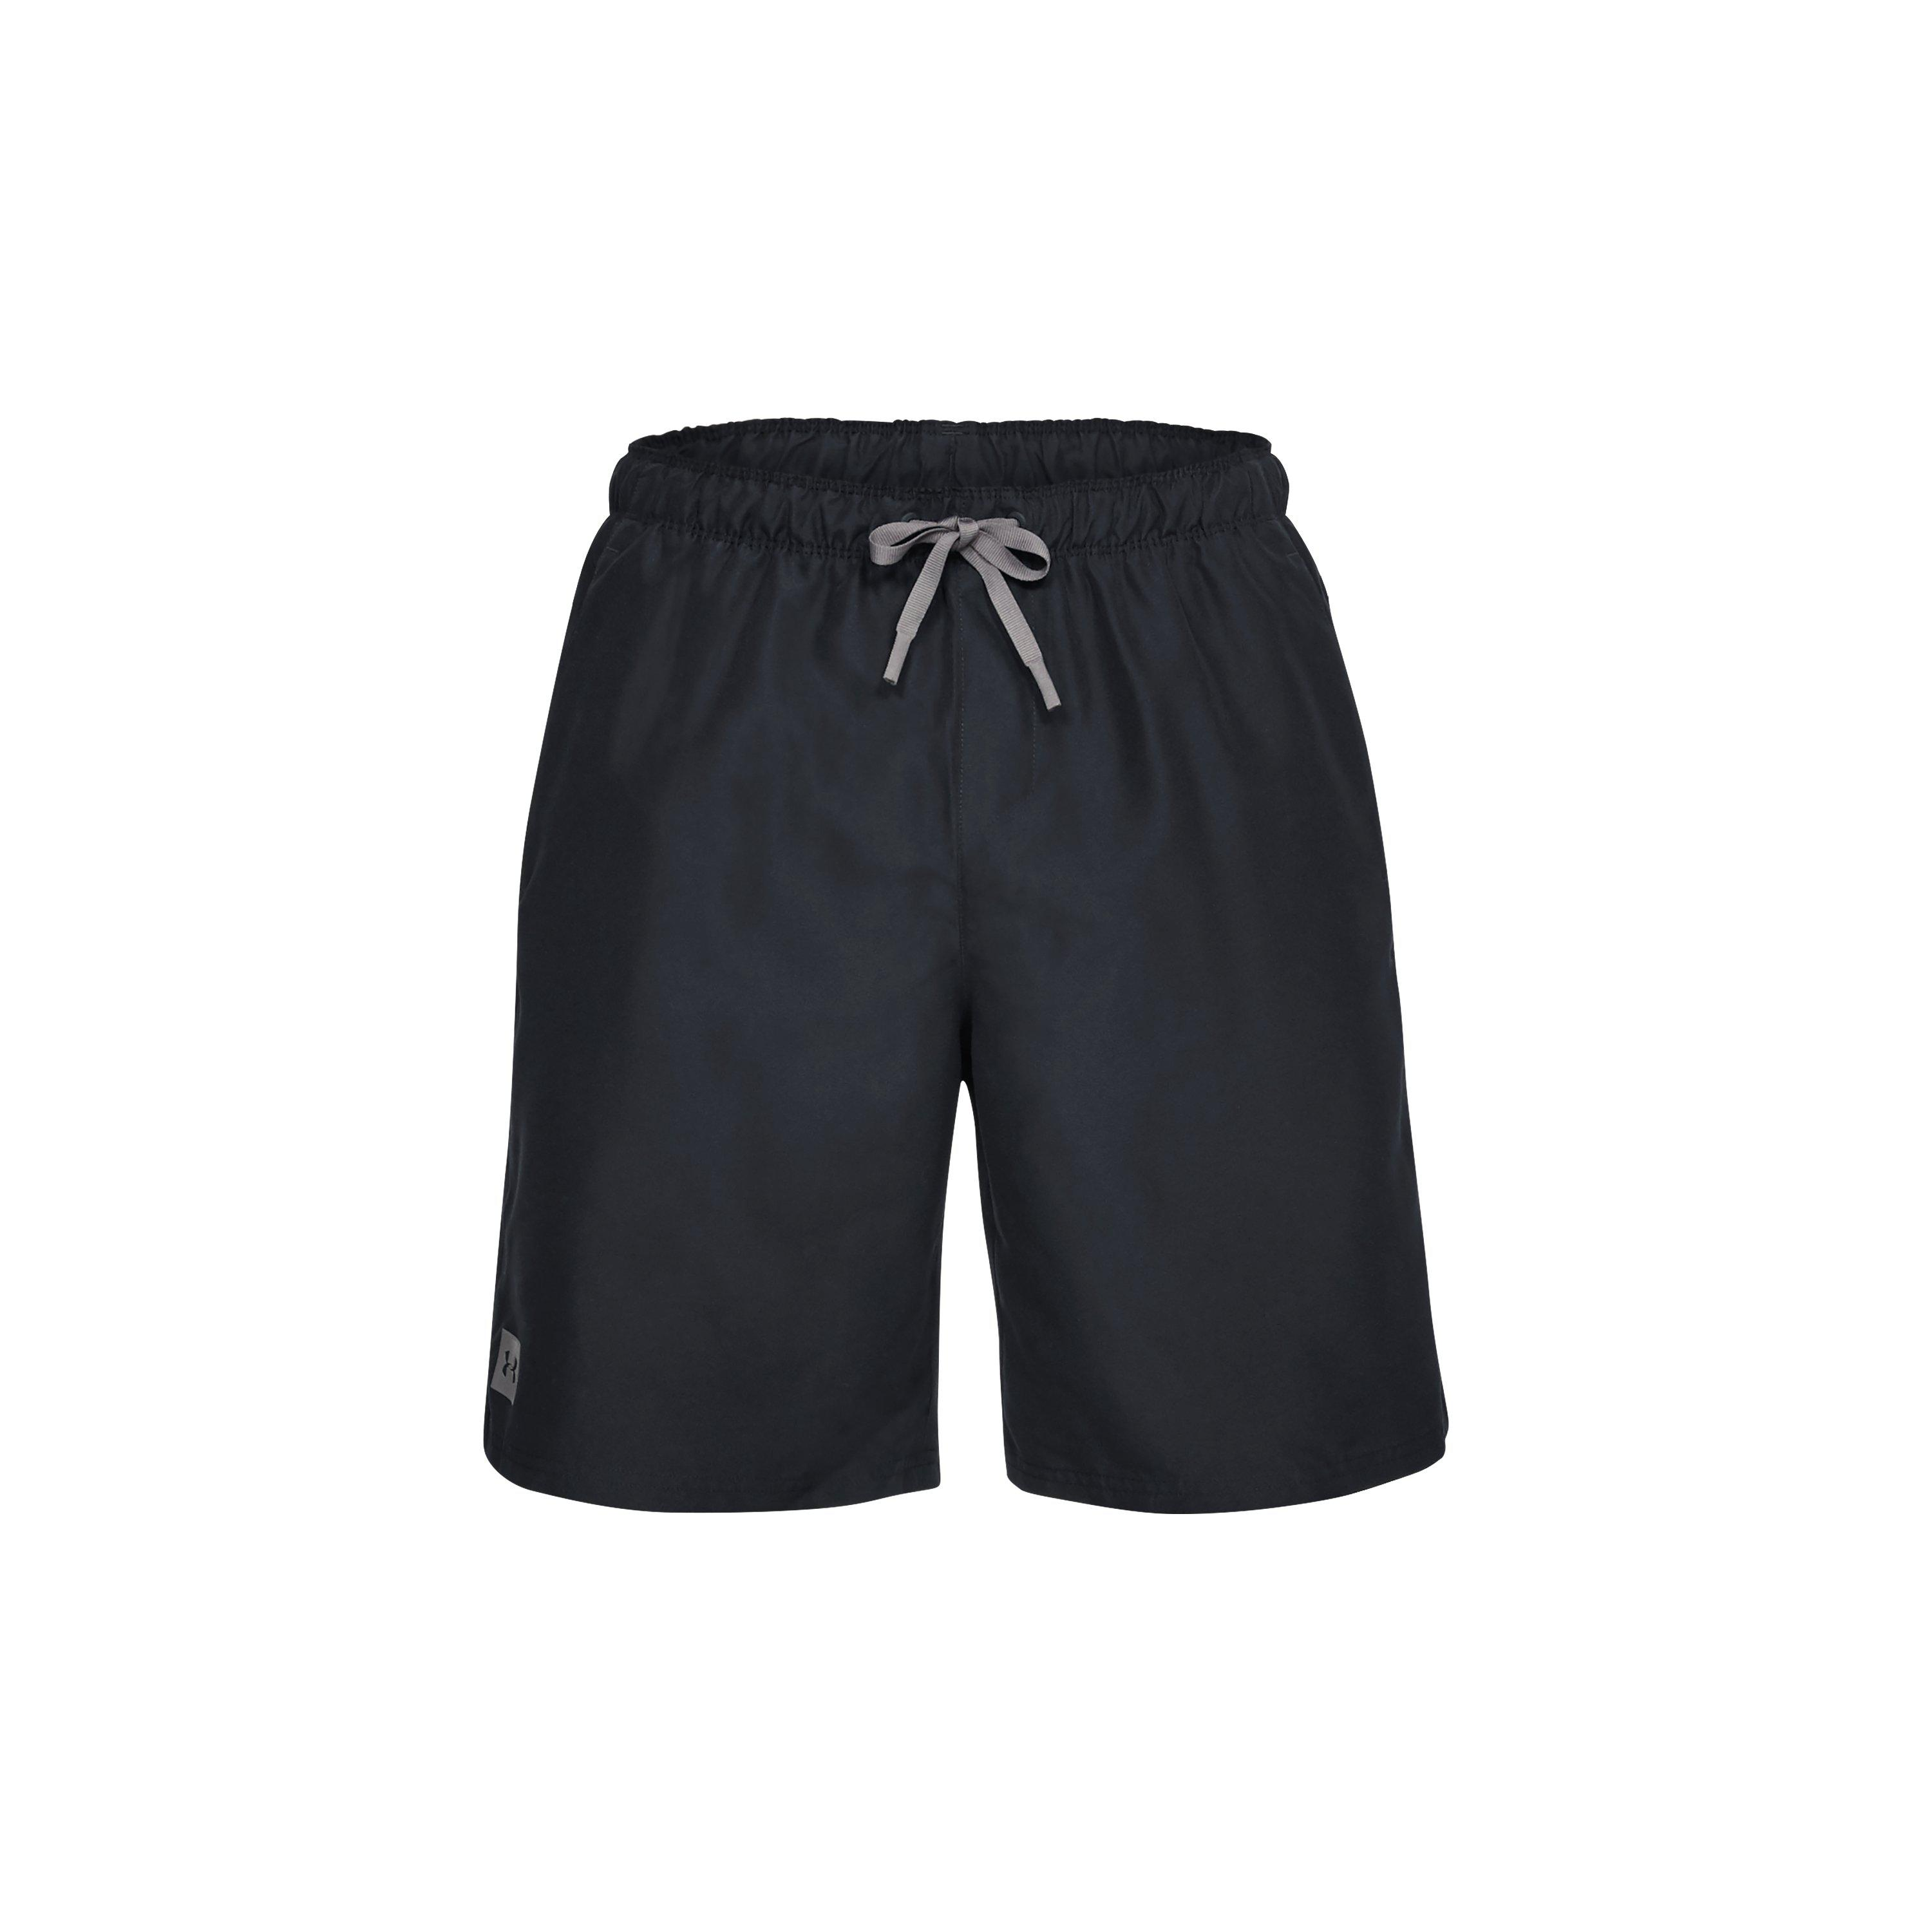 Under Armour Men/'s Mania Volley Boardshorts 3 Colors